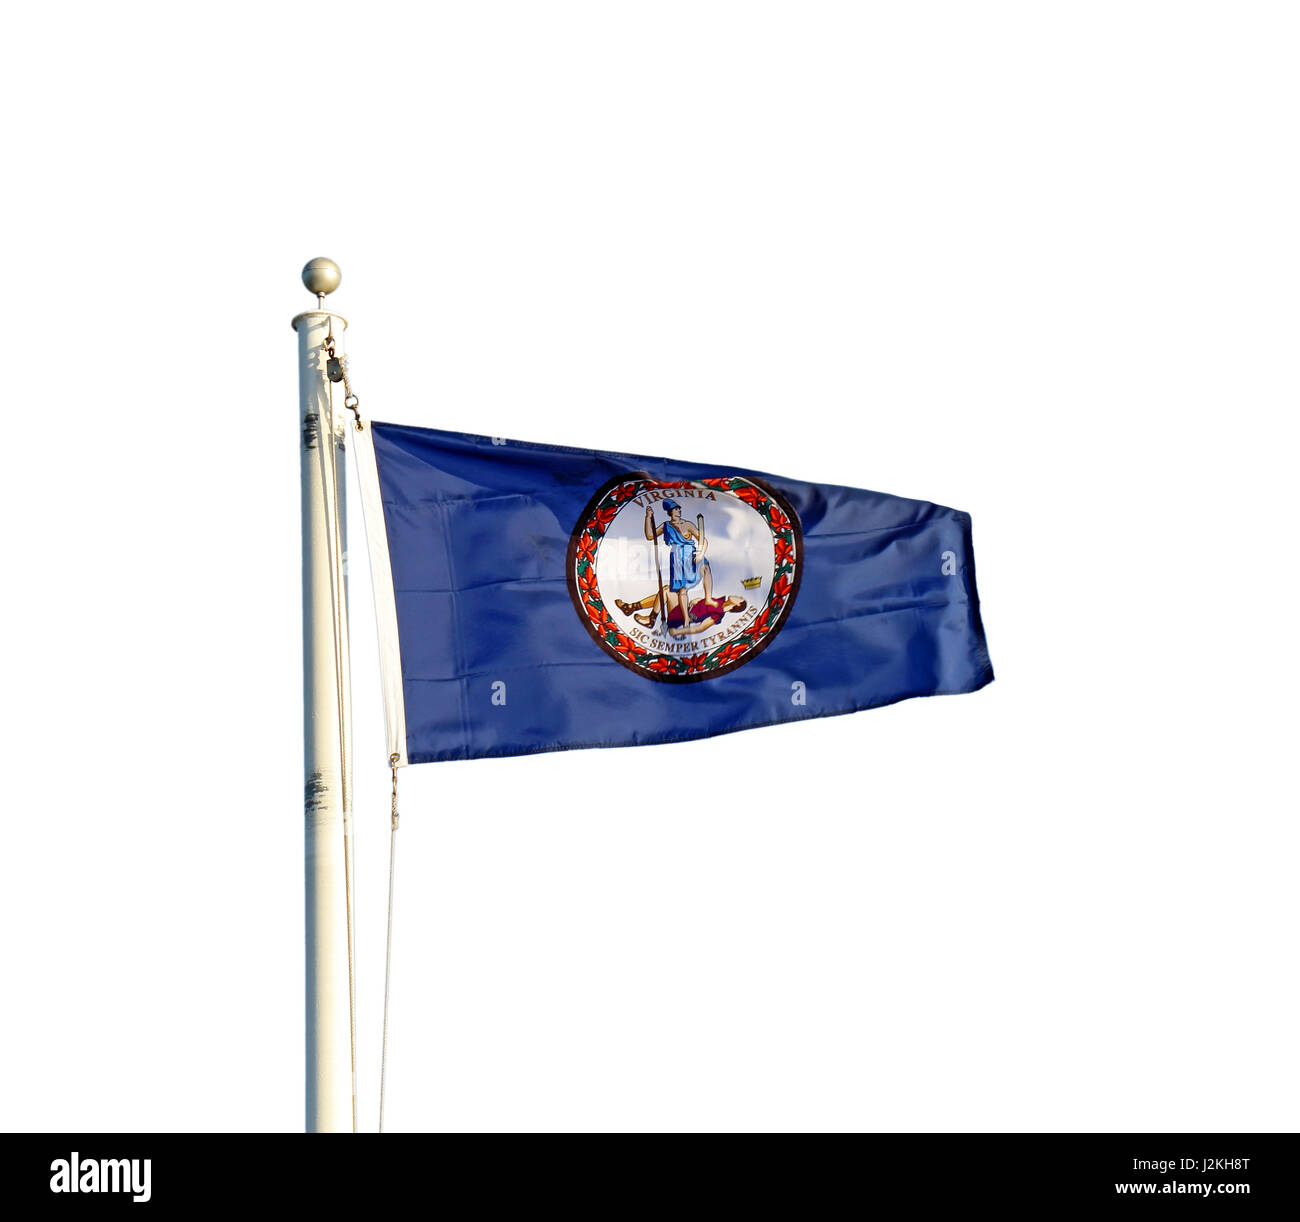 Flag of the Commonwealth of Virginia flying from a white pole isolated against a white background - Stock Image